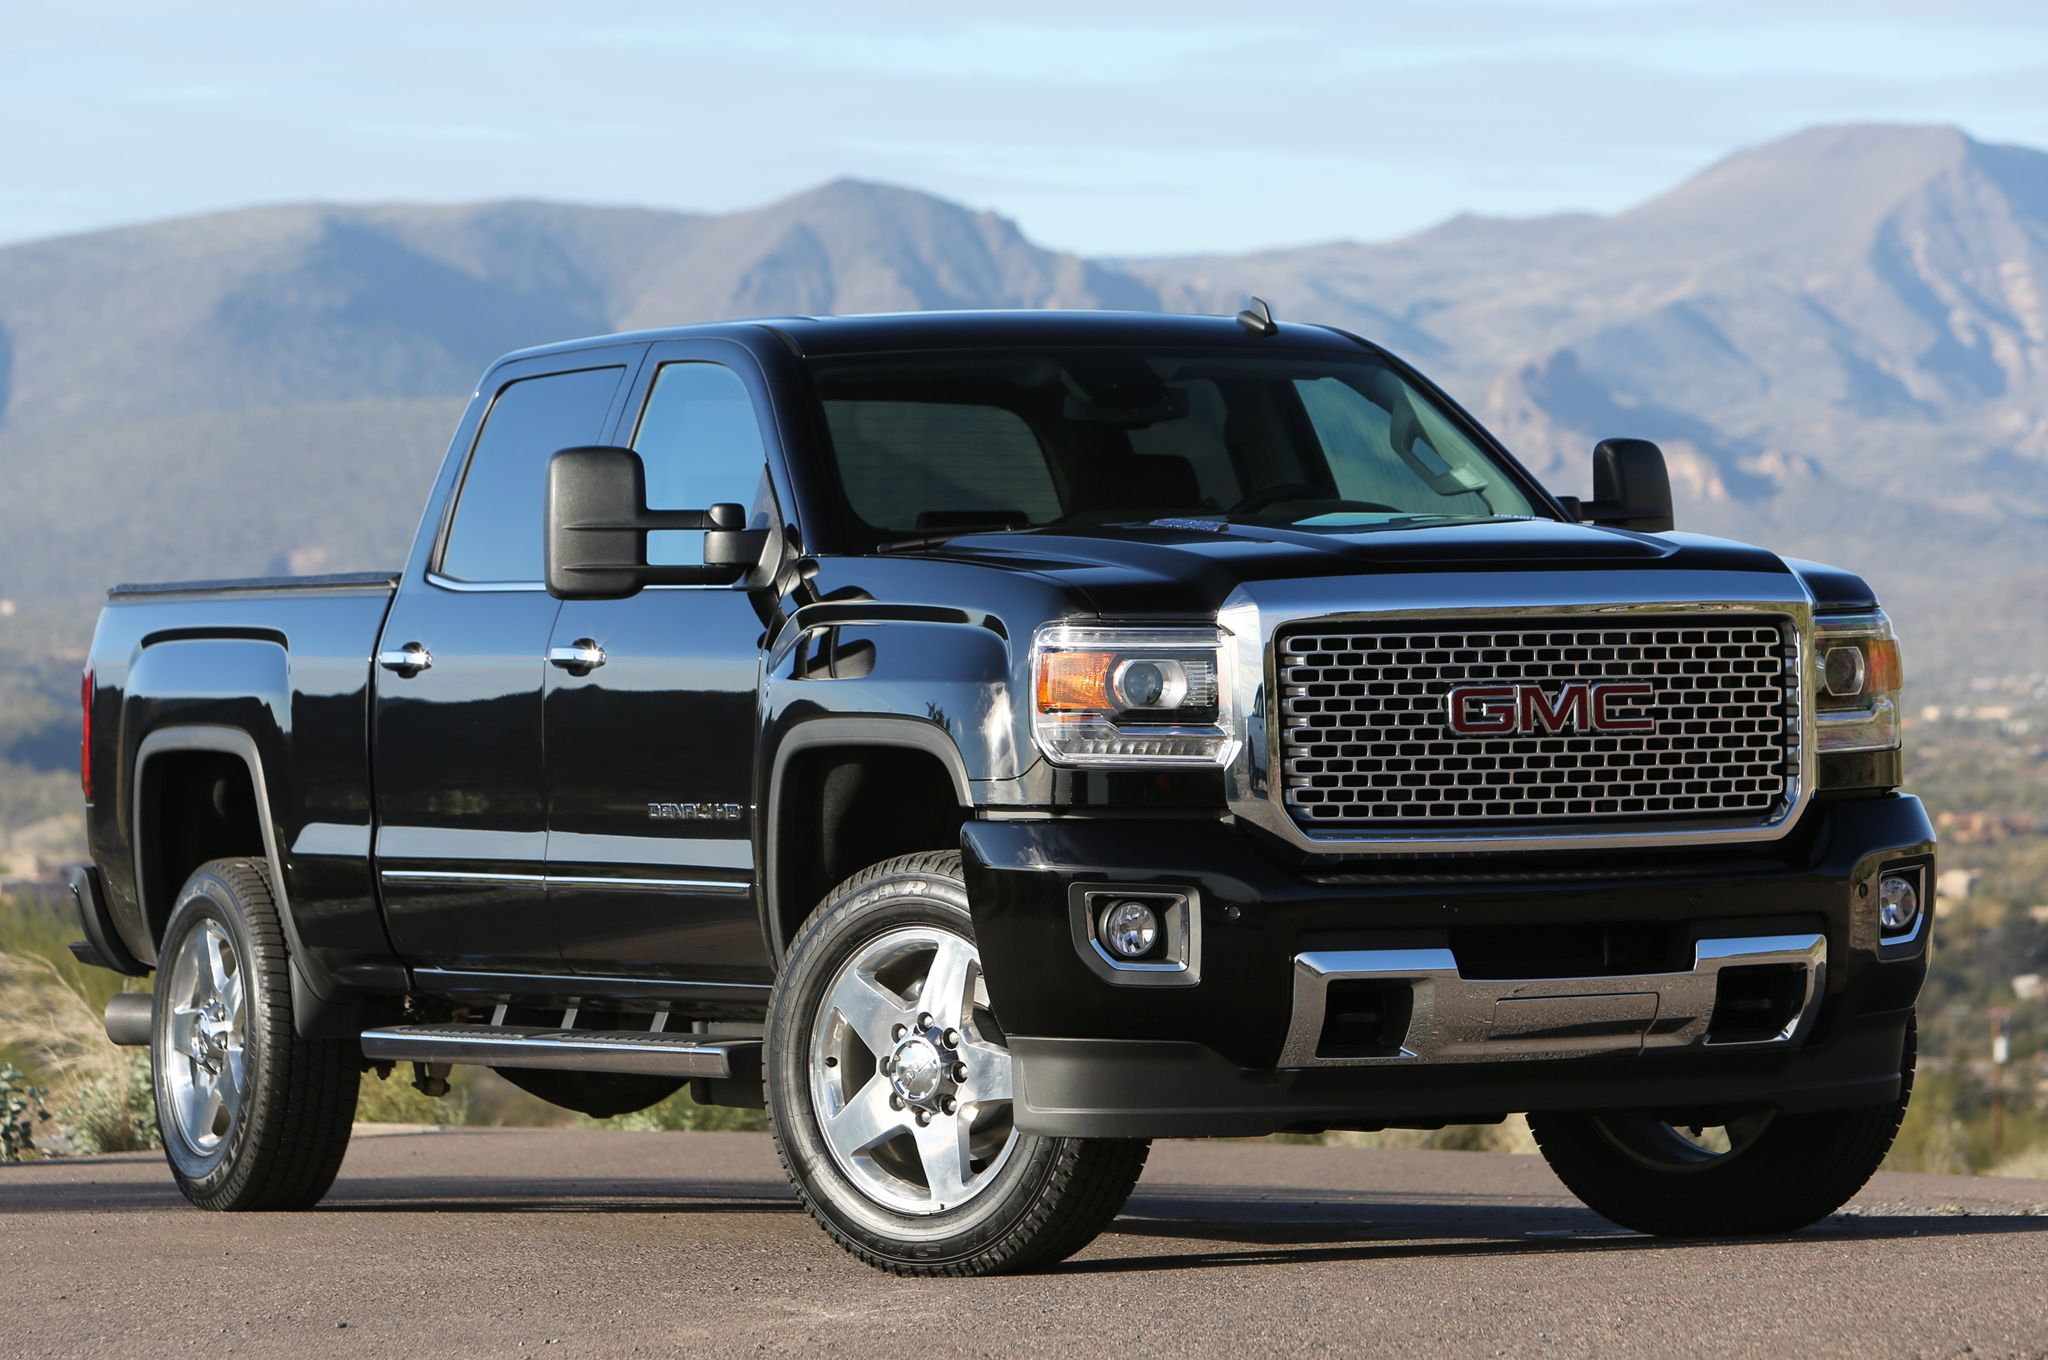 Black 2014 Gmc Sierra Truck Gmc Sierra Gmc Vehicles Gmc Denali